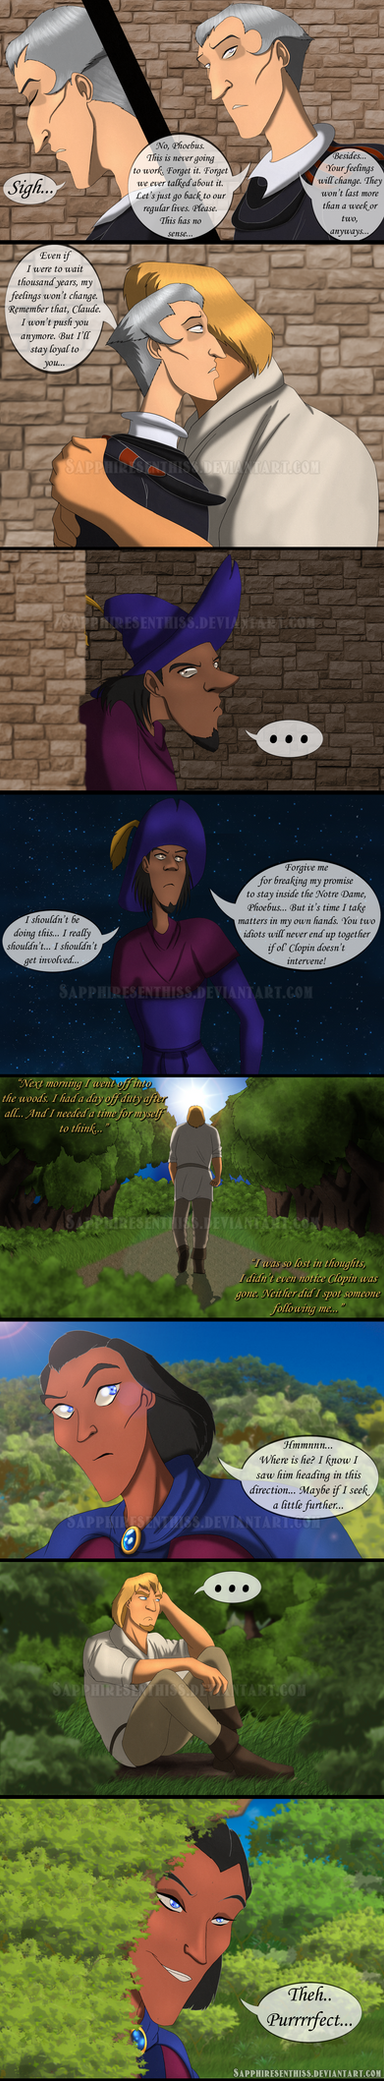 Never Judge A Gypsy By His Skin - PAGE 22 by Sapphiresenthiss